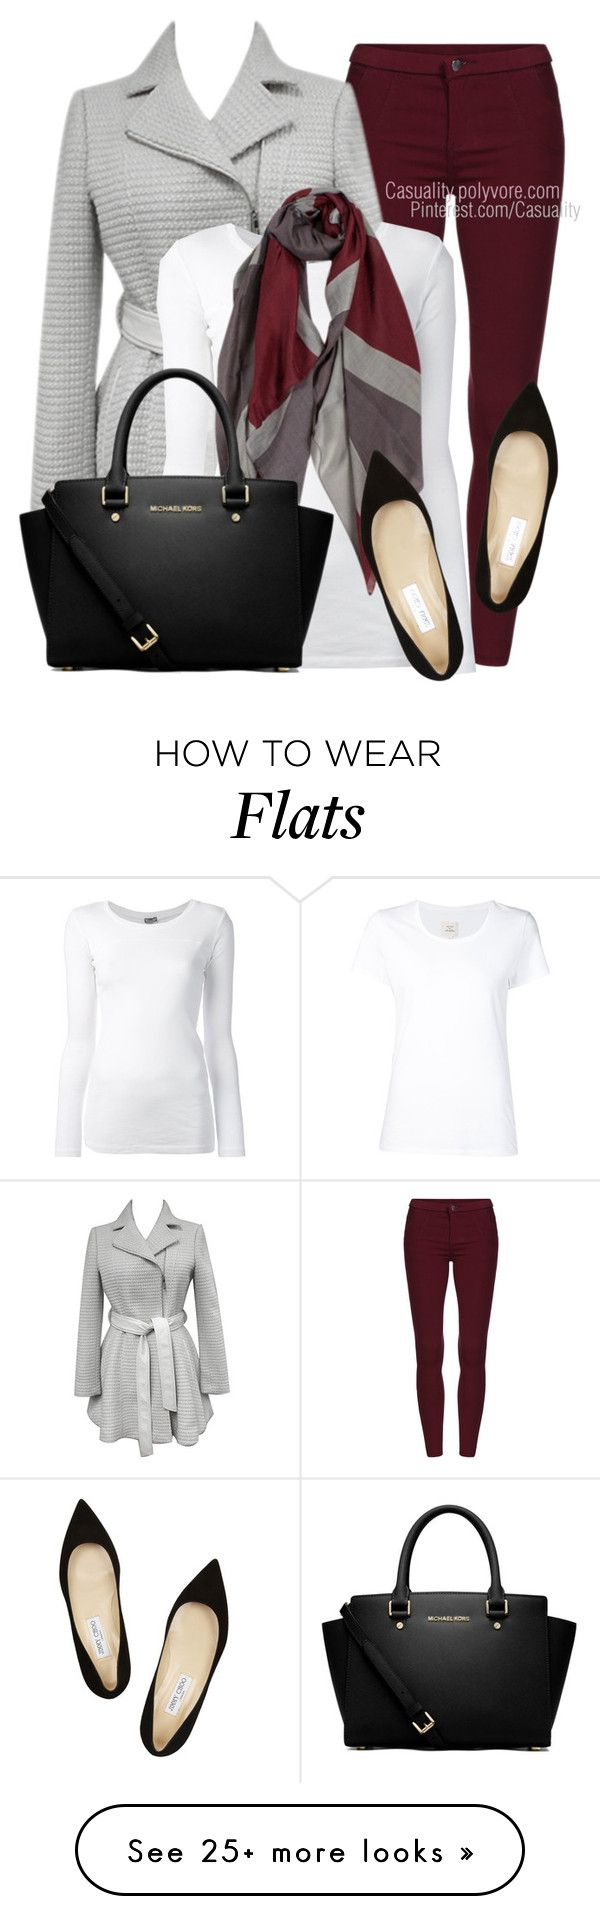 Untitled #1522 by casuality on Polyvore featuring Kensie, KristenseN du Nord, Max 'n Chester, Jimmy Choo and MICHAEL Michael Kors